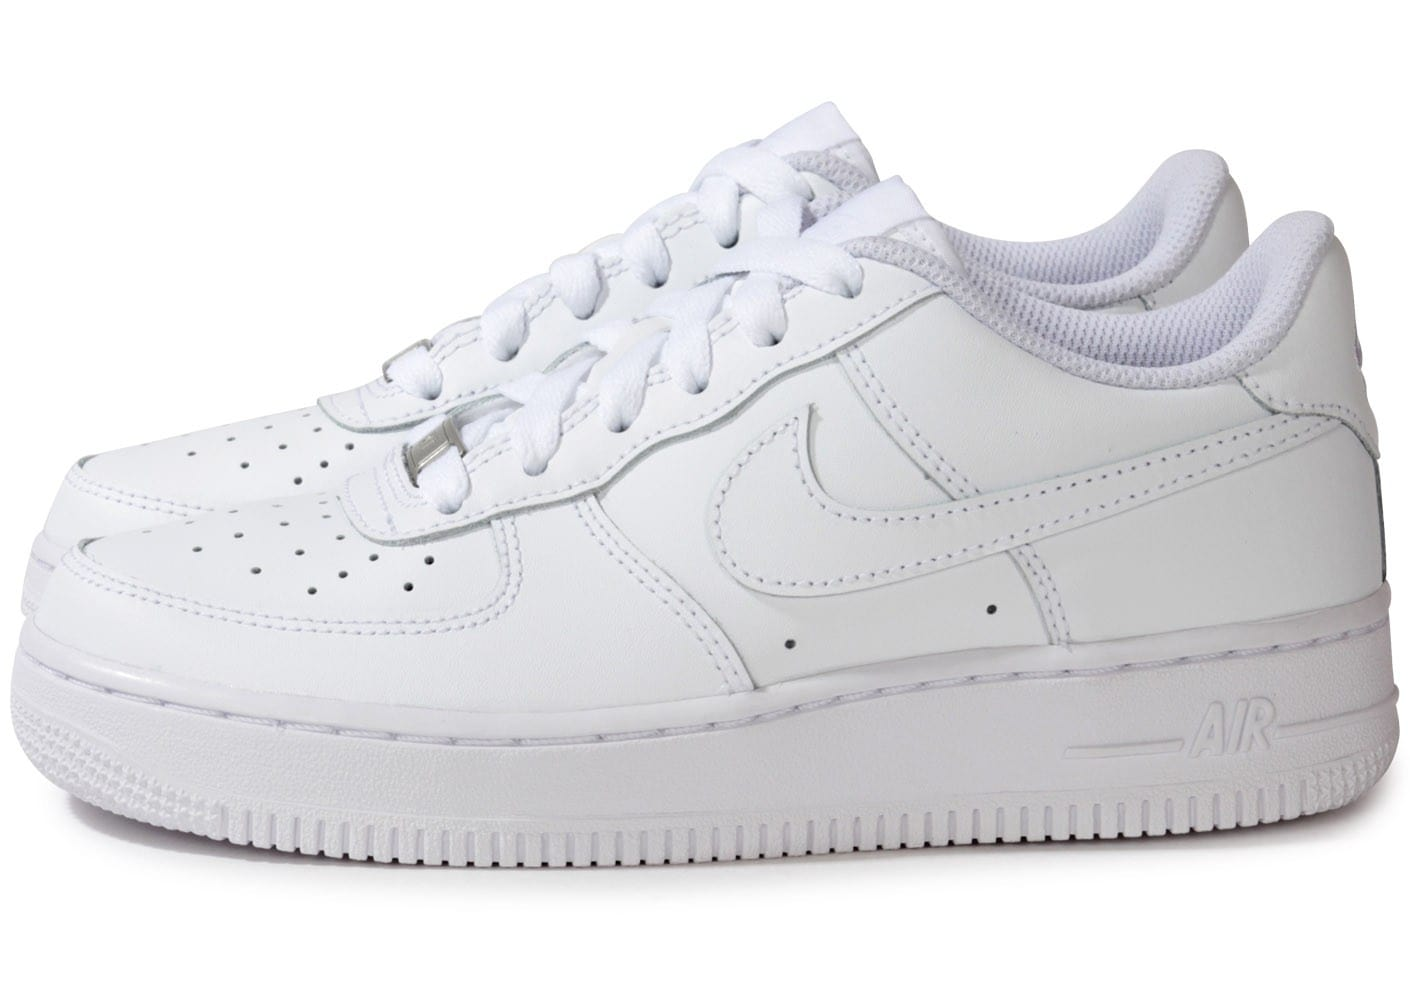 nike air force 1 junior blanche chaussures baskets femme chausport. Black Bedroom Furniture Sets. Home Design Ideas